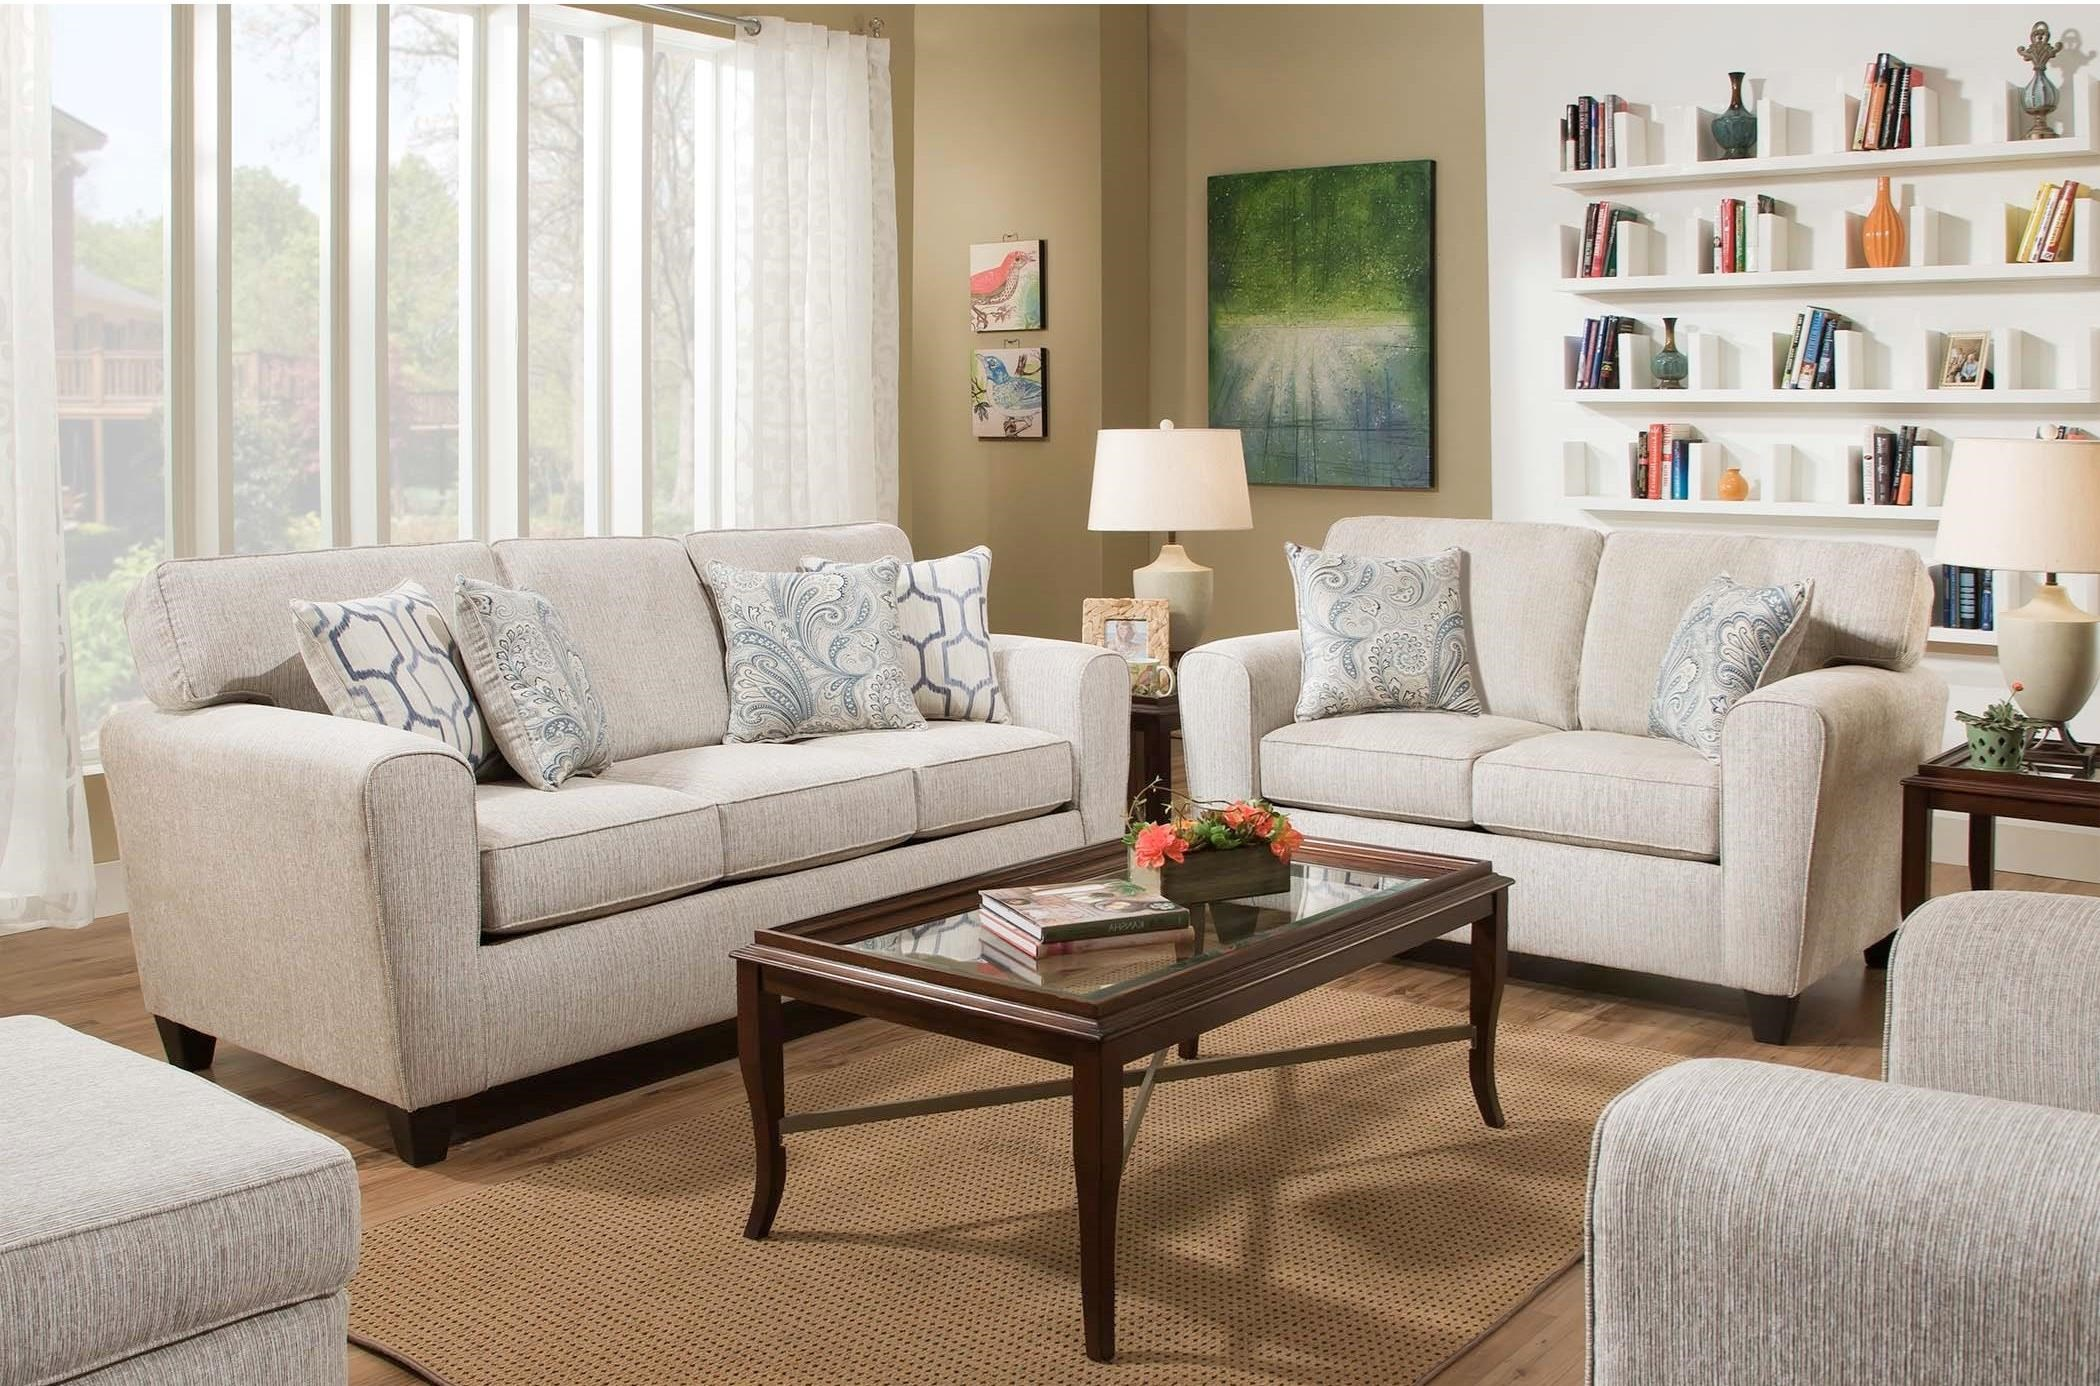 American Furniture 3100 Living Room Group Miskelly Furniture Stationary Living Room Groups